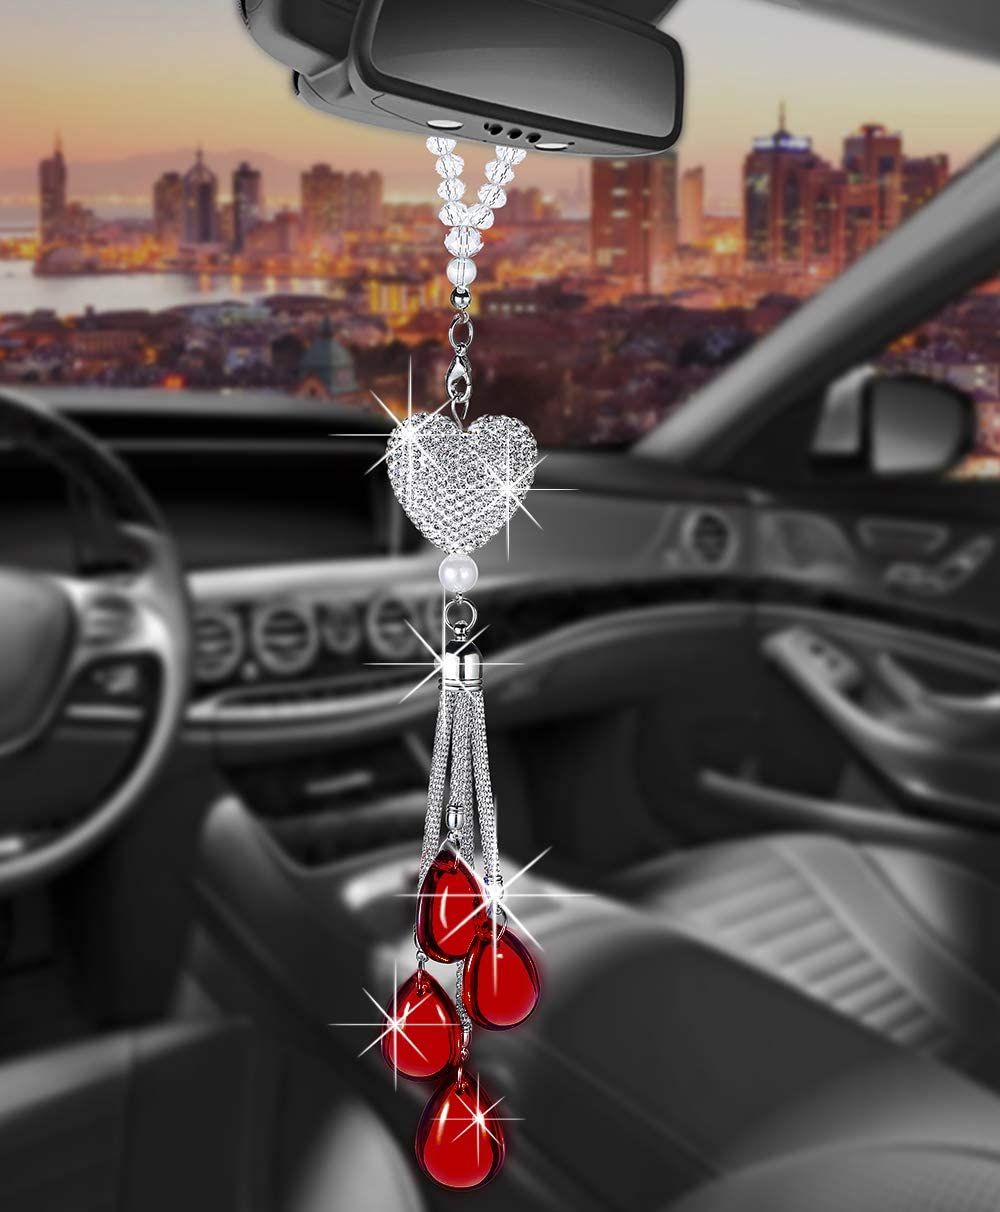 Tznyly Rearview Mirror Ornaments Access Bling Car Hanging Discount Las Vegas Mall mail order